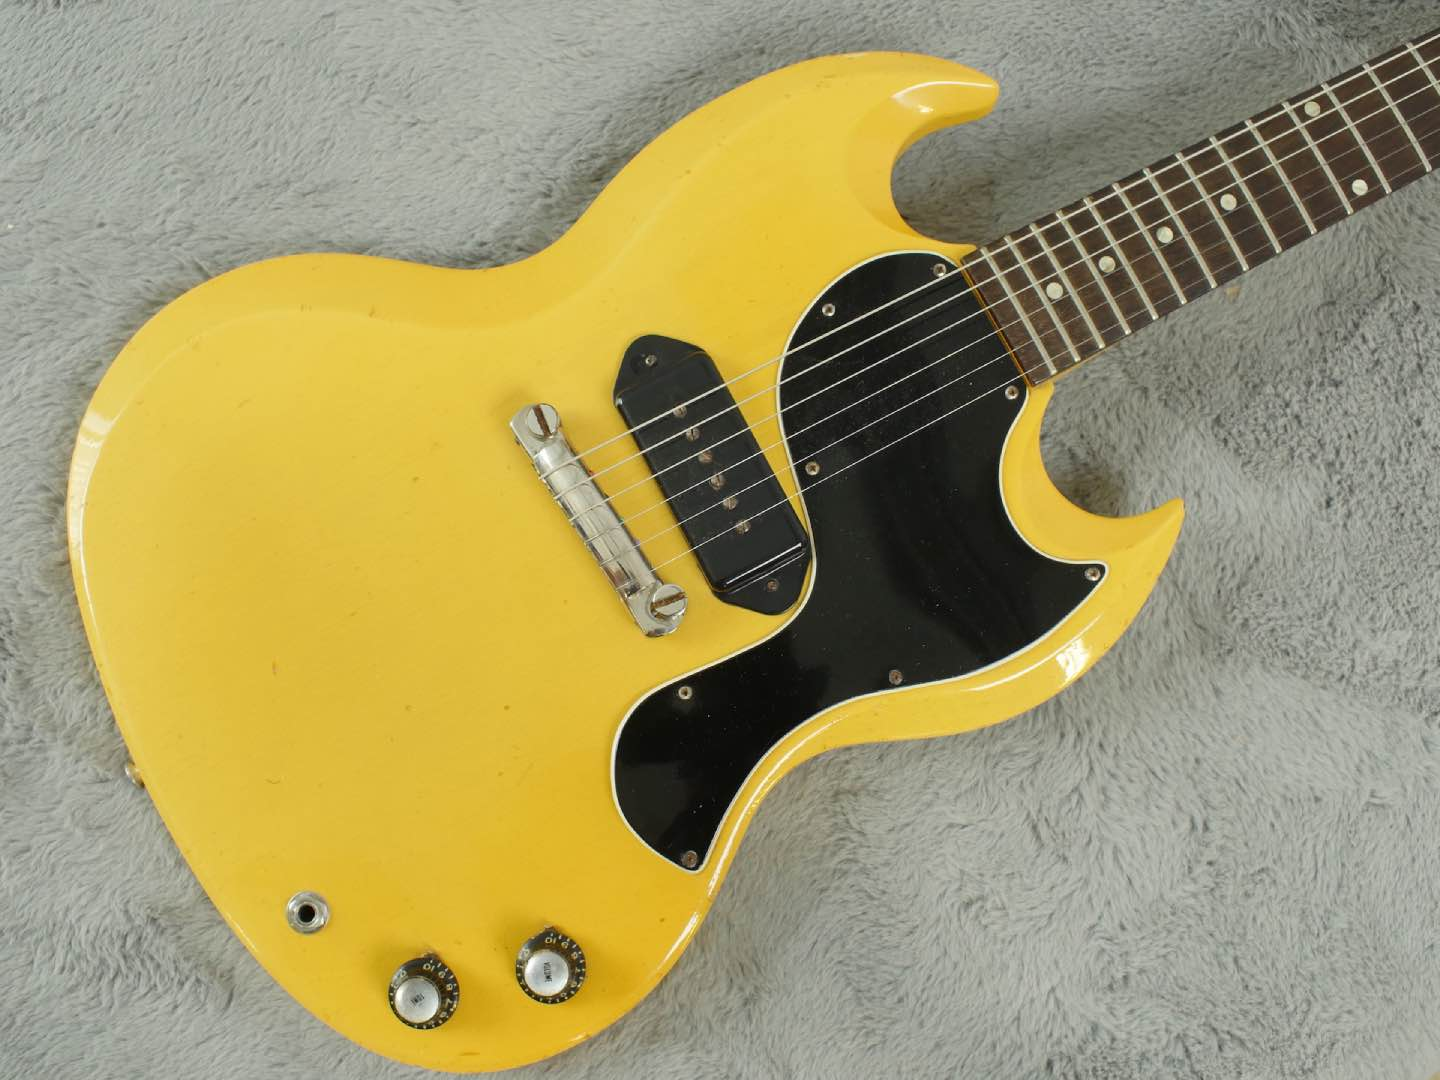 1961 Gibson SG Les Paul Junior TV Yellow